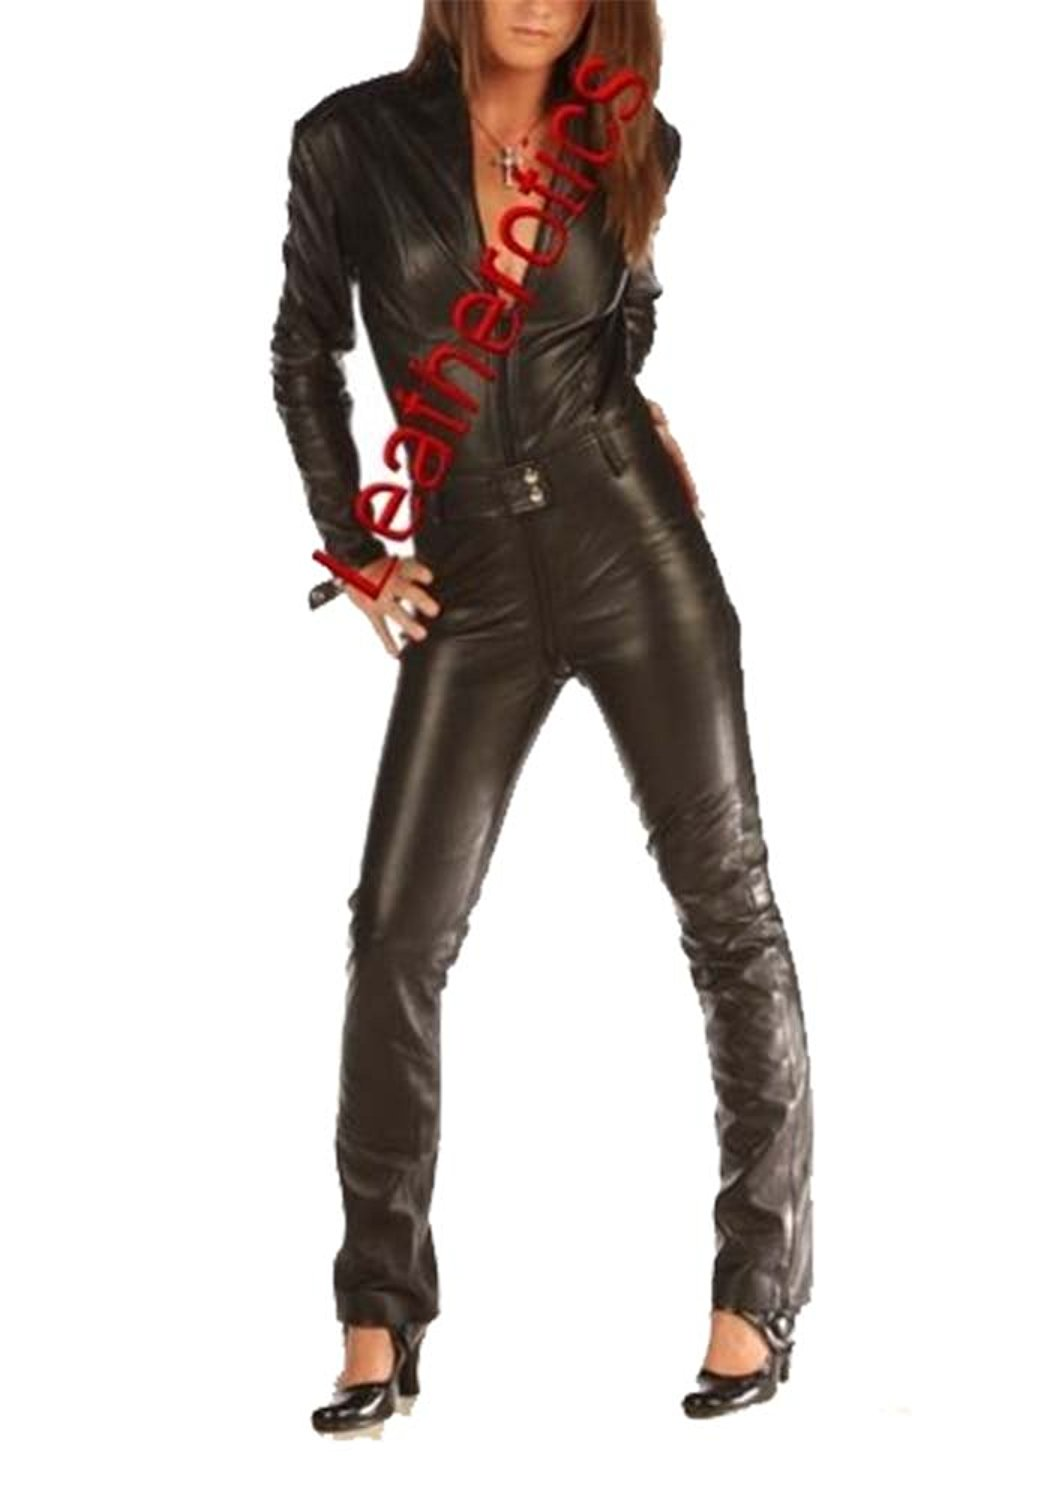 e351412ebf7 Get Quotations · Leatherotics Skin Tight Suit Black Leather Catsuit Jumpsuit  Tight 1235